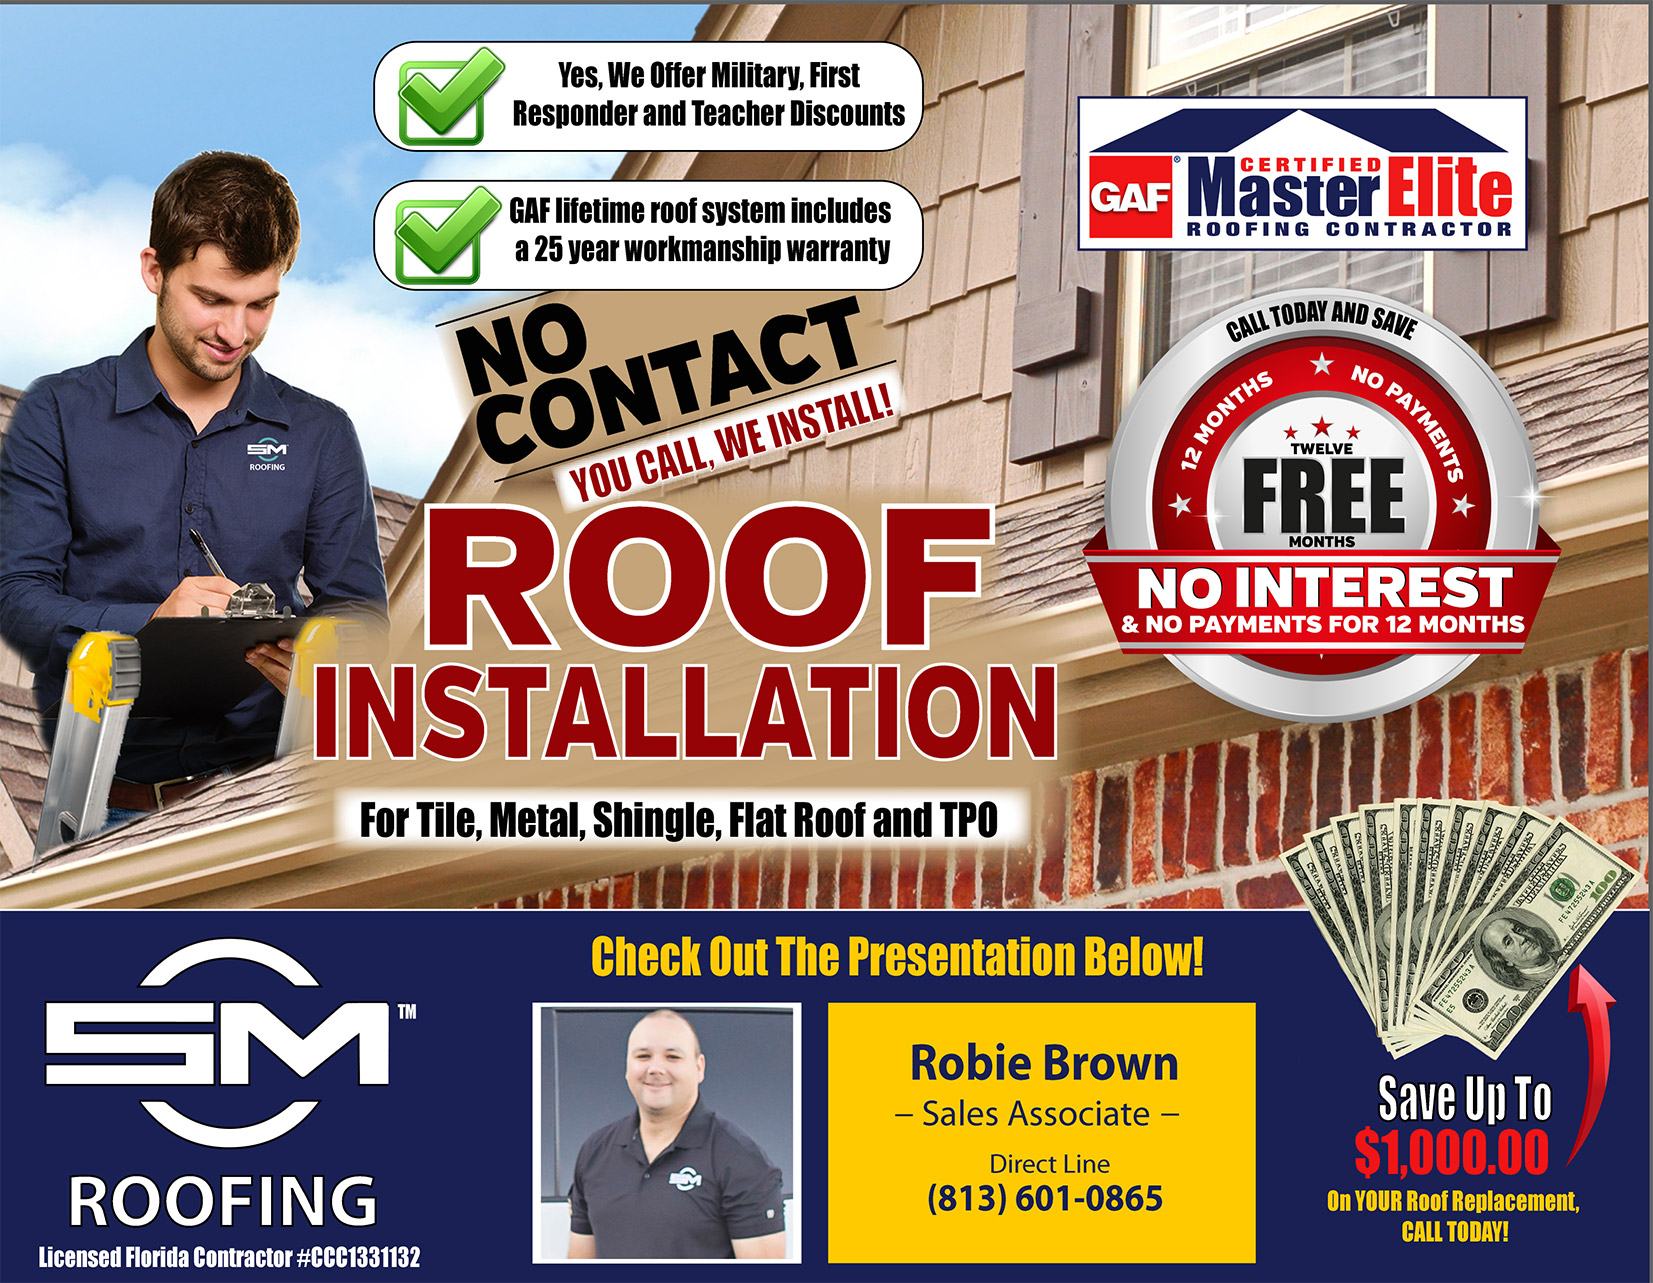 On behalf of SCM Roofing, Robbie Brown welcomes you to our online presentation page. Below is a video which will walk you through each of the important aspects of our roofing process. Thank you for visiting, let's scroll down the page and begin.